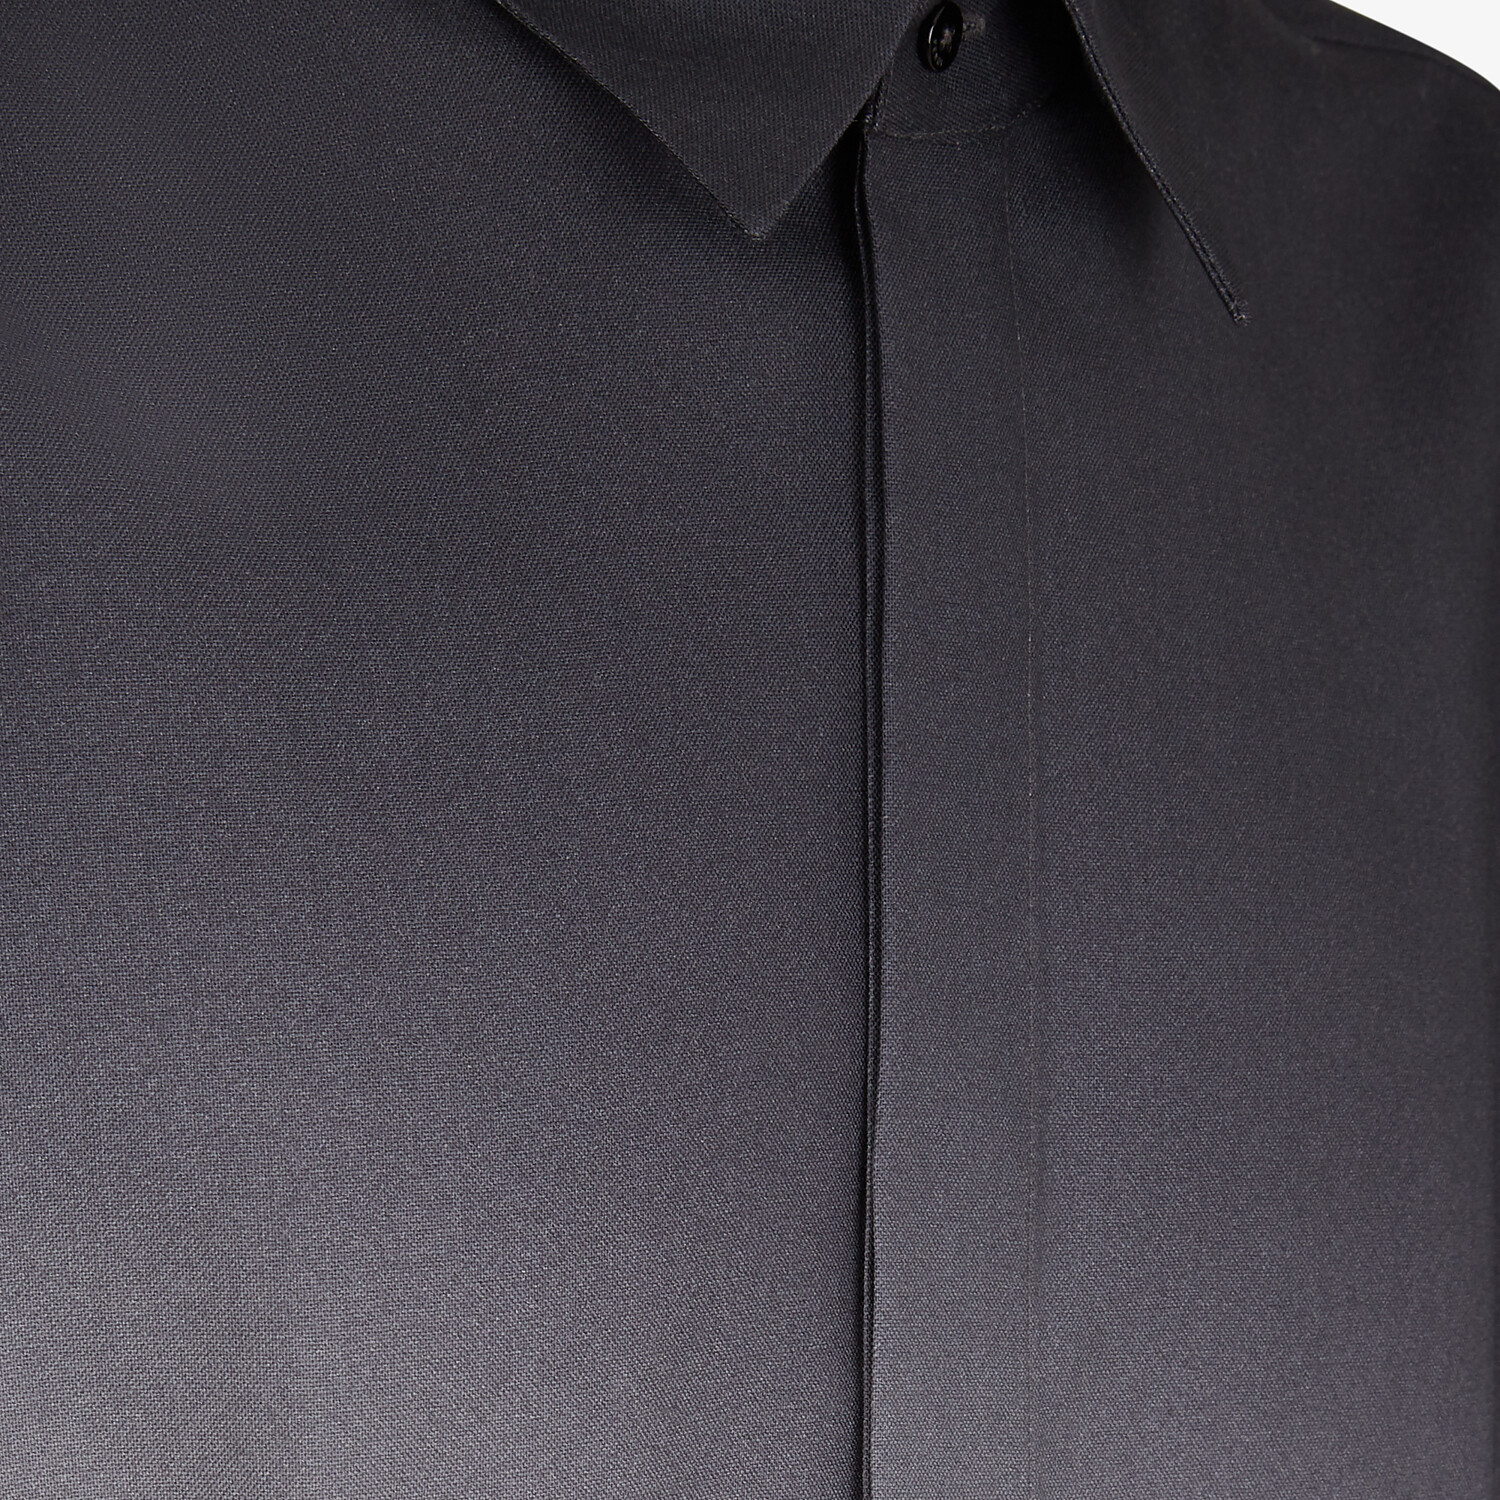 FENDI SHIRT - Black wool shirt - view 3 detail